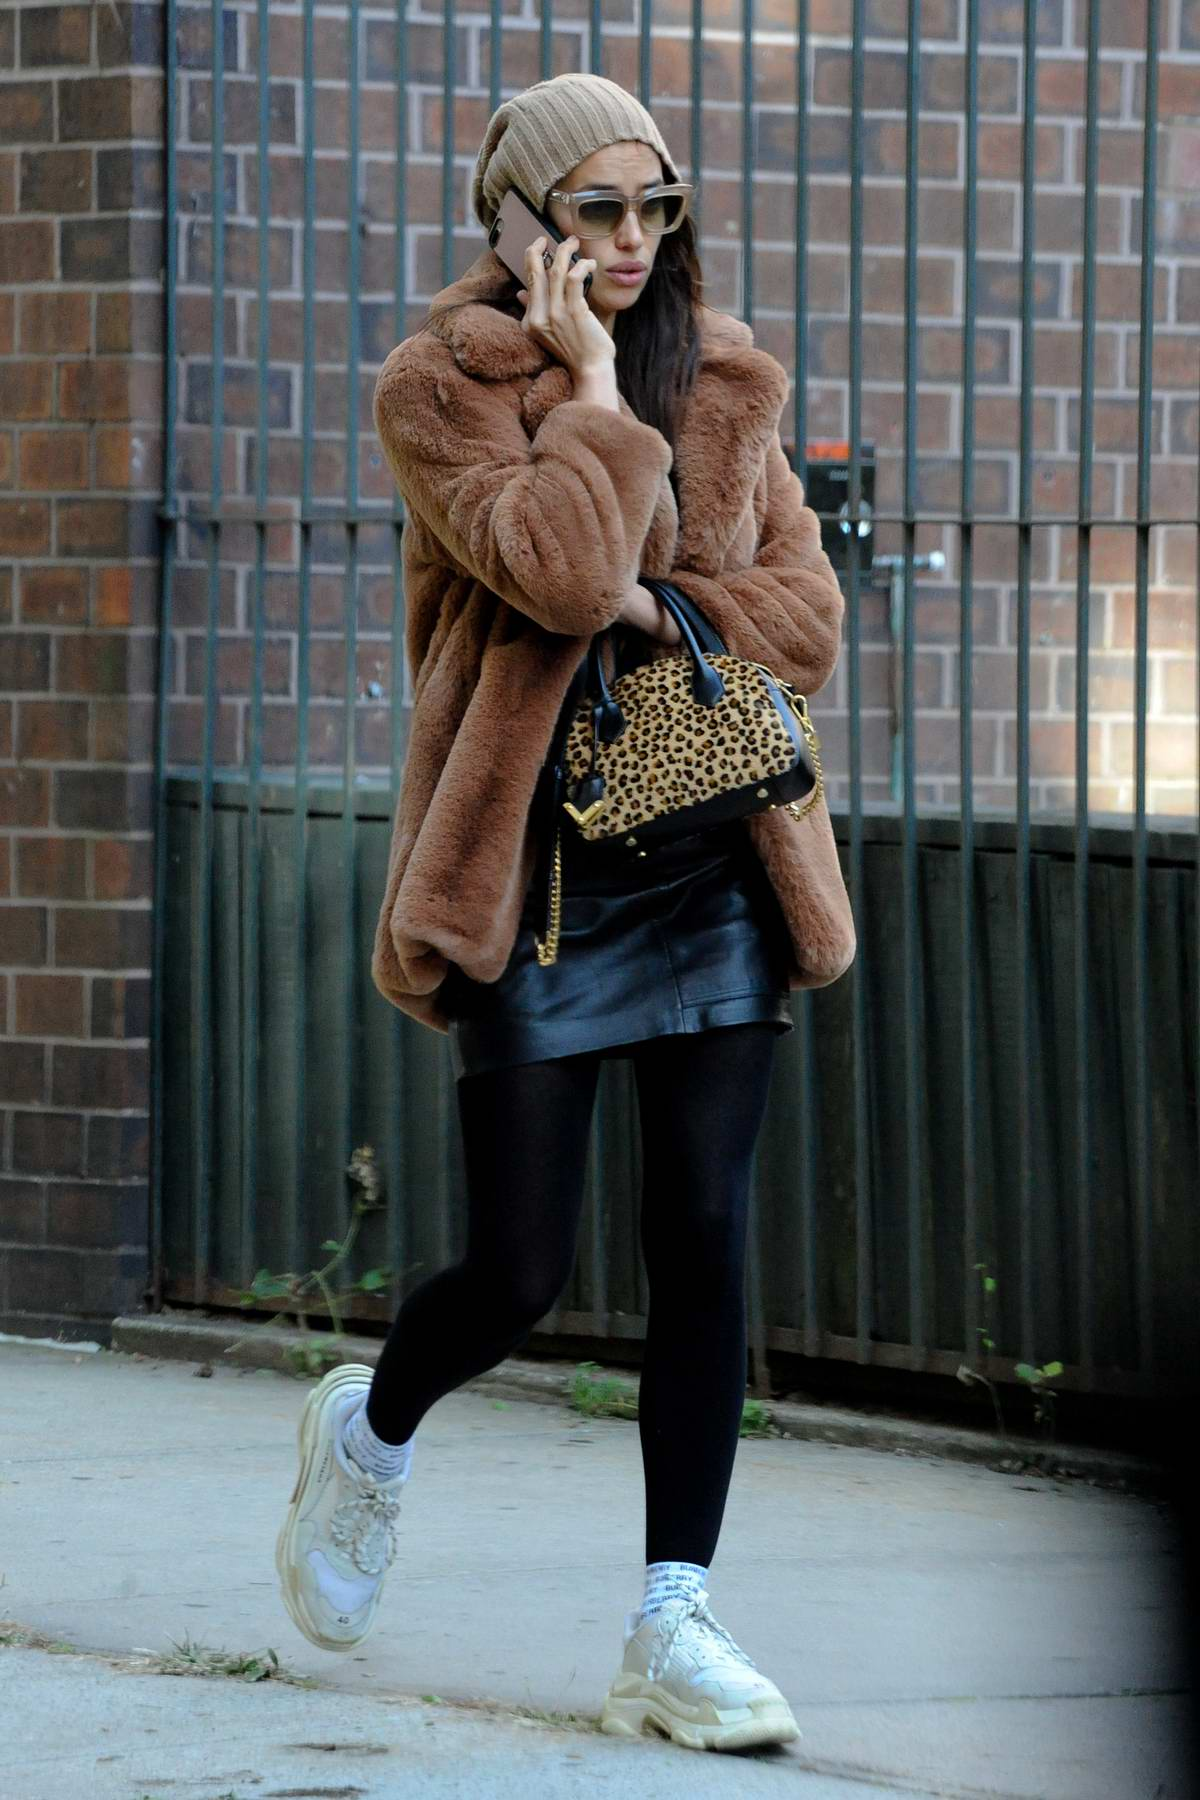 Irina Shayk keeps warm in a brown fur jacket, short leather skirt paired with leggings and a beanie while out talking on her phone in New York City